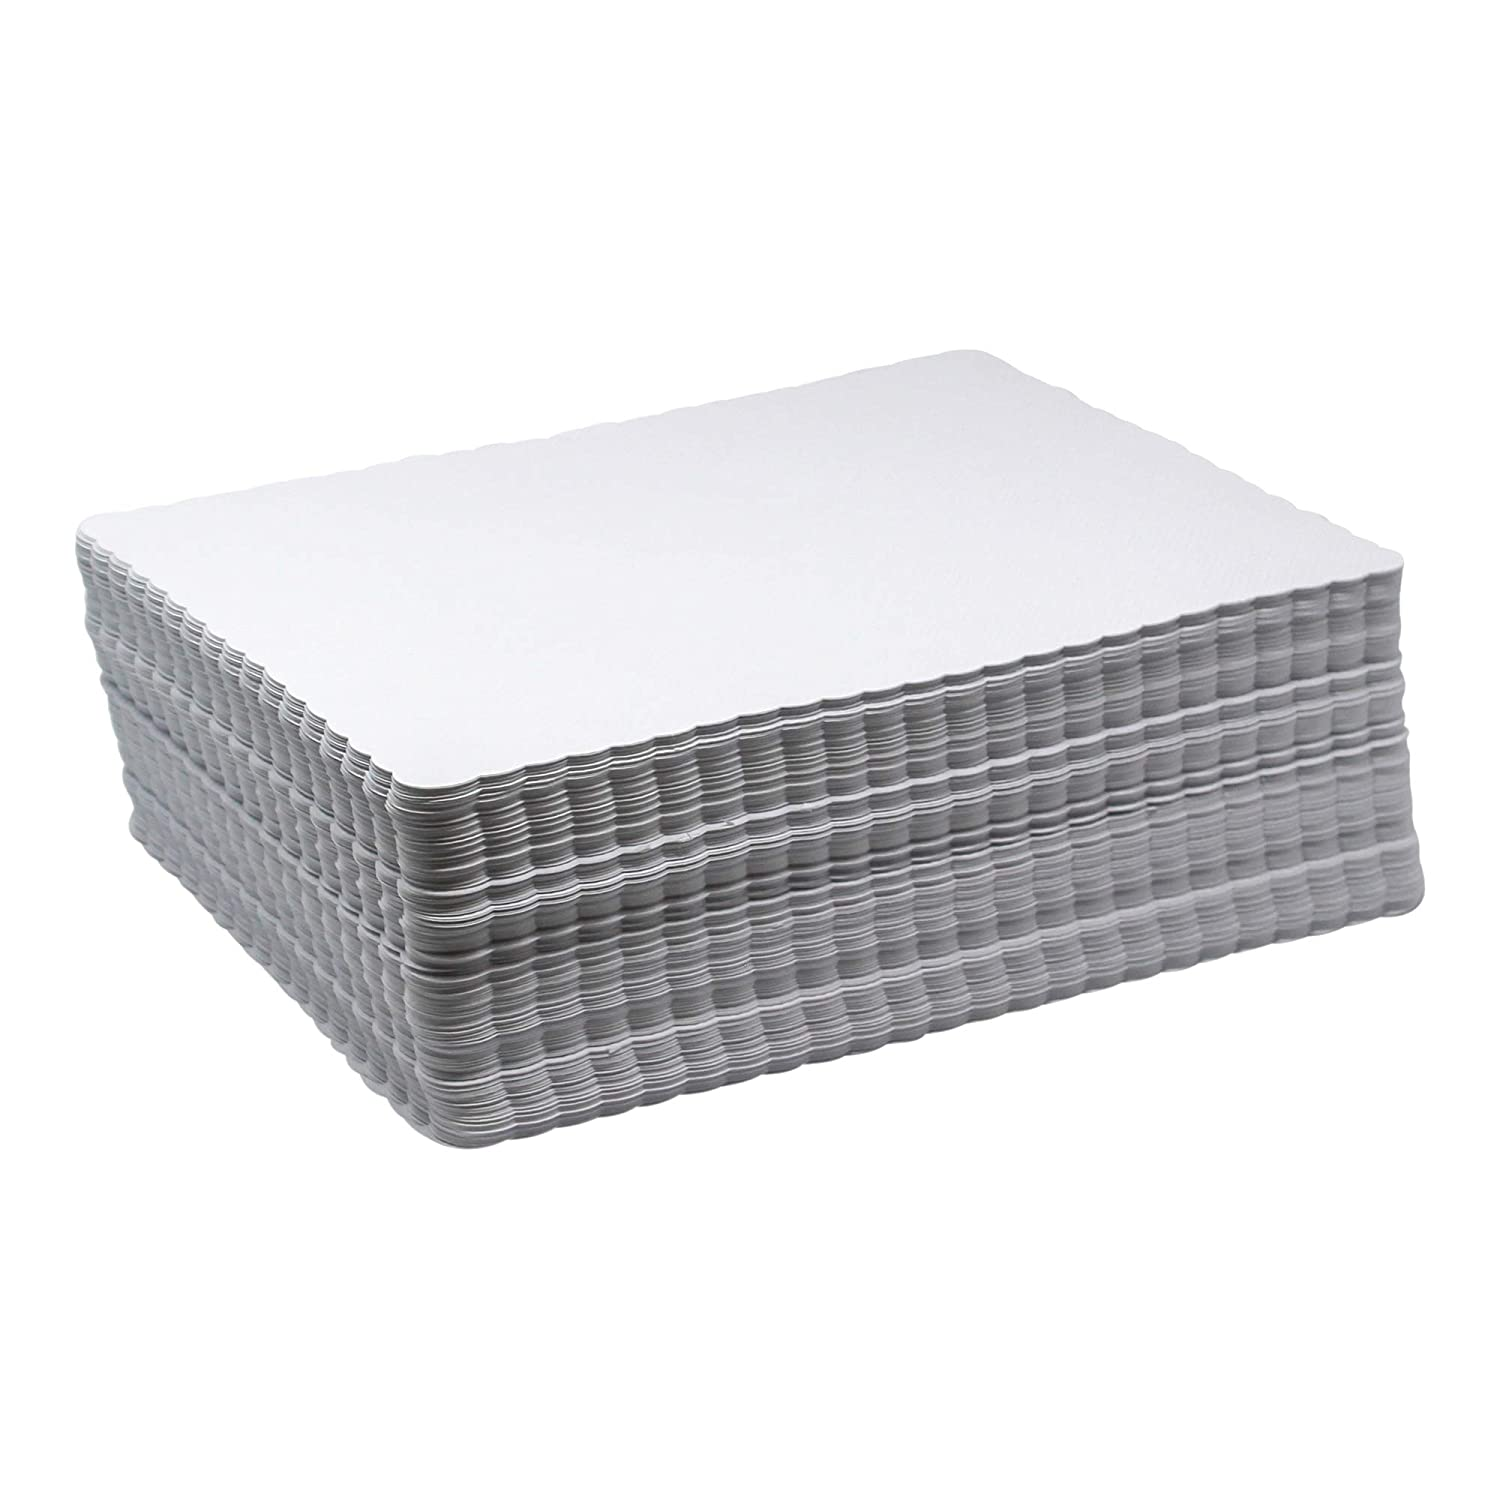 "Scalloped Paper Placemats Bulk - Case of 1000 Rectangular Mats - 10"" x 14"" White Placemats - Disposable Commercial Place Mats for Health Care Facilities, Restaurants, Diners, and Catered Events"